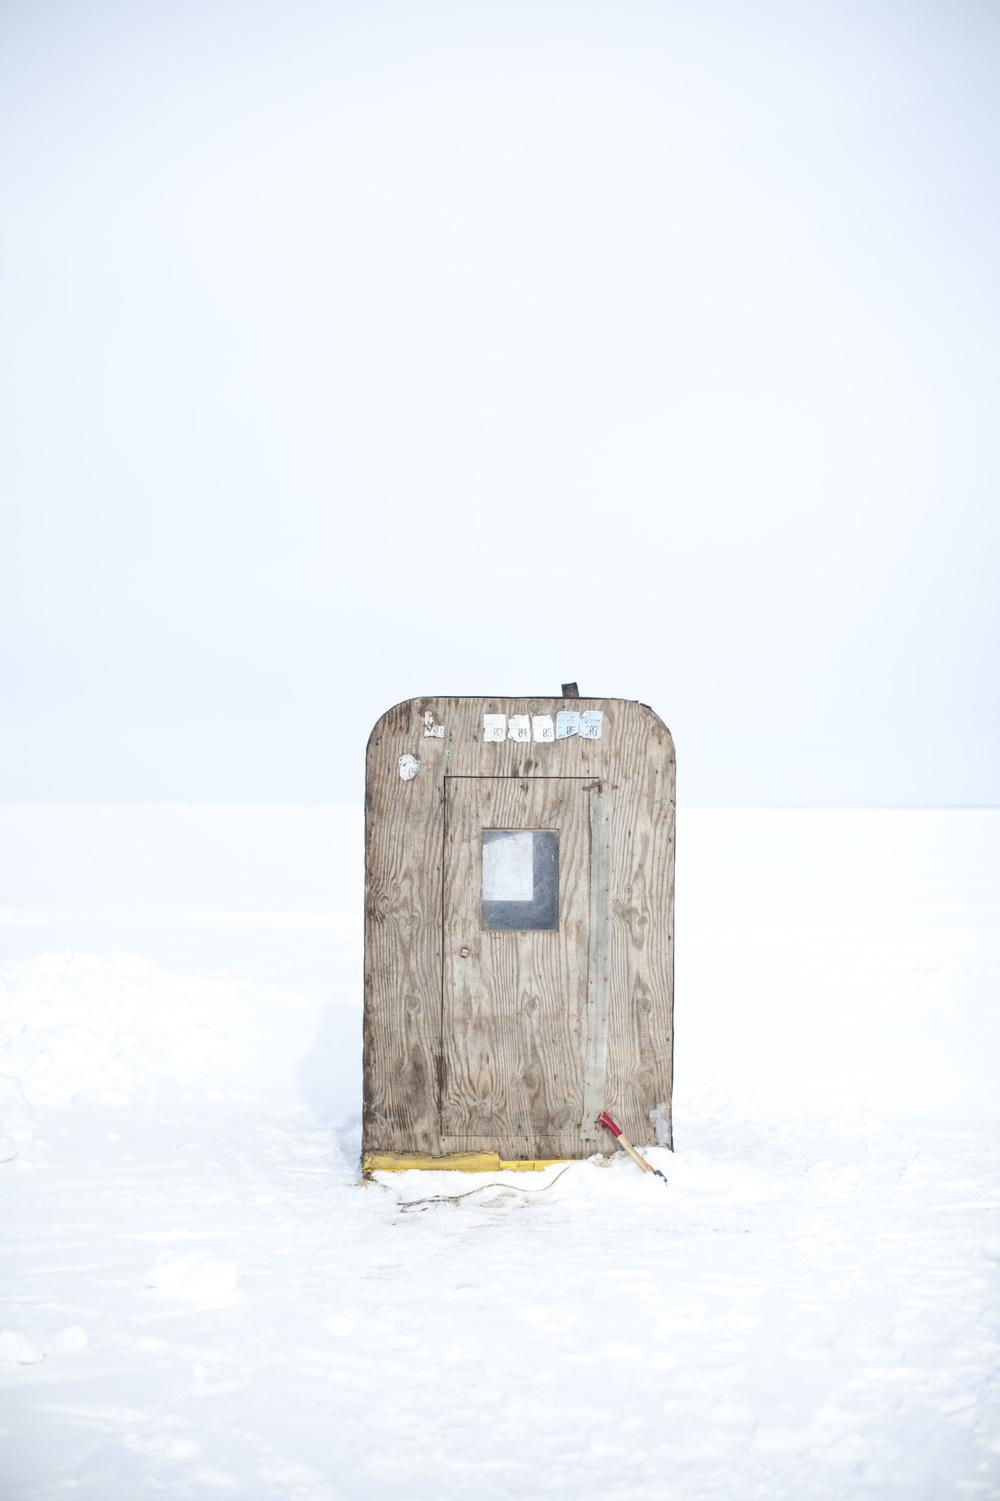 Winter Ice Fishing for Popular Mechanics, The New York Times, and Outdoor Life